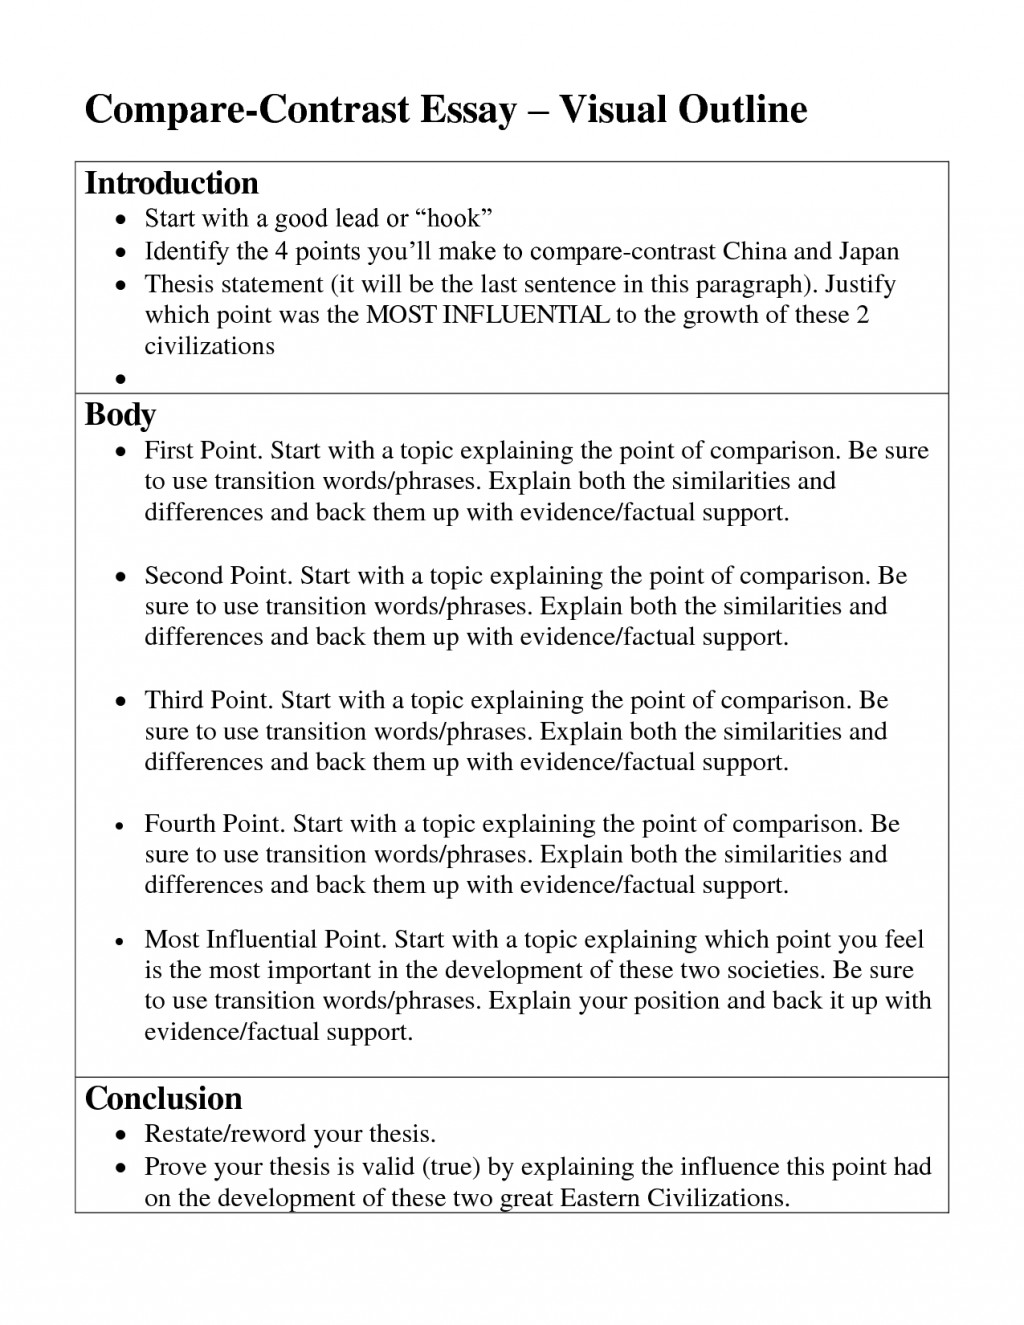 005 How To Write Compare And Contrast Essay Outstanding A Outline Powerpoint Introduction Large